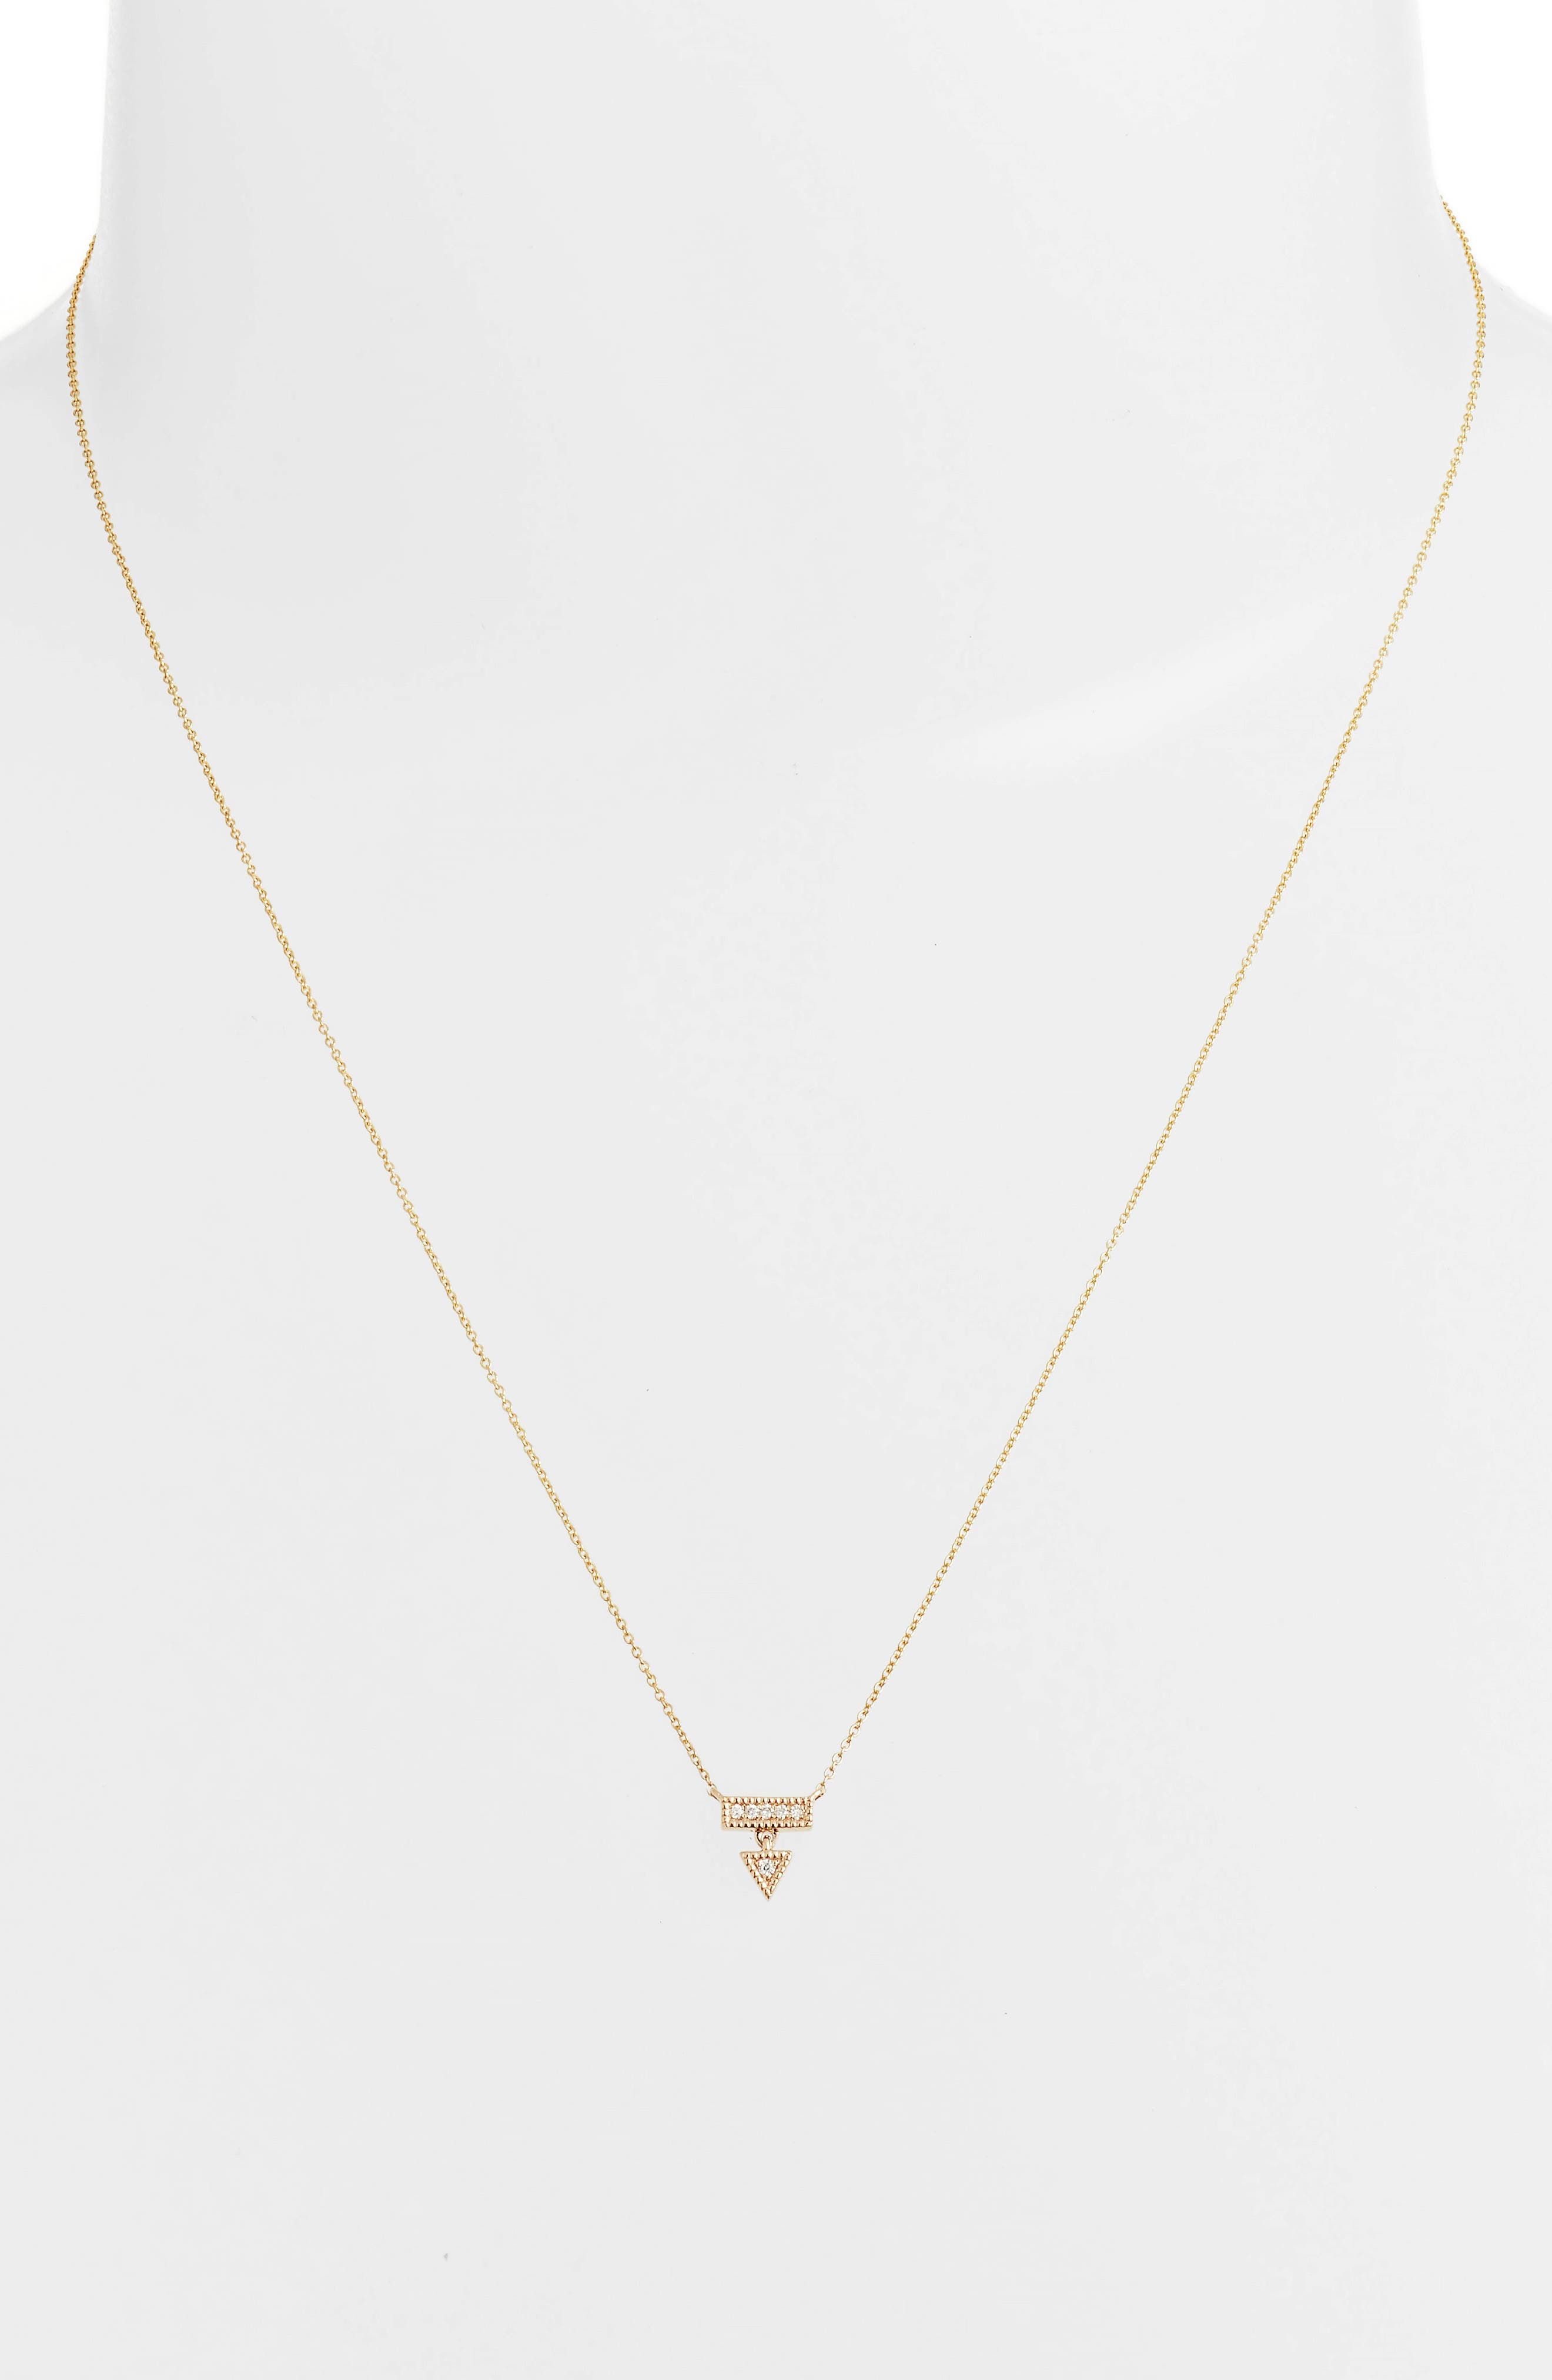 Emily Sarah Diamond Triangle Dangle Necklace,                             Alternate thumbnail 2, color,                             Yellow Gold